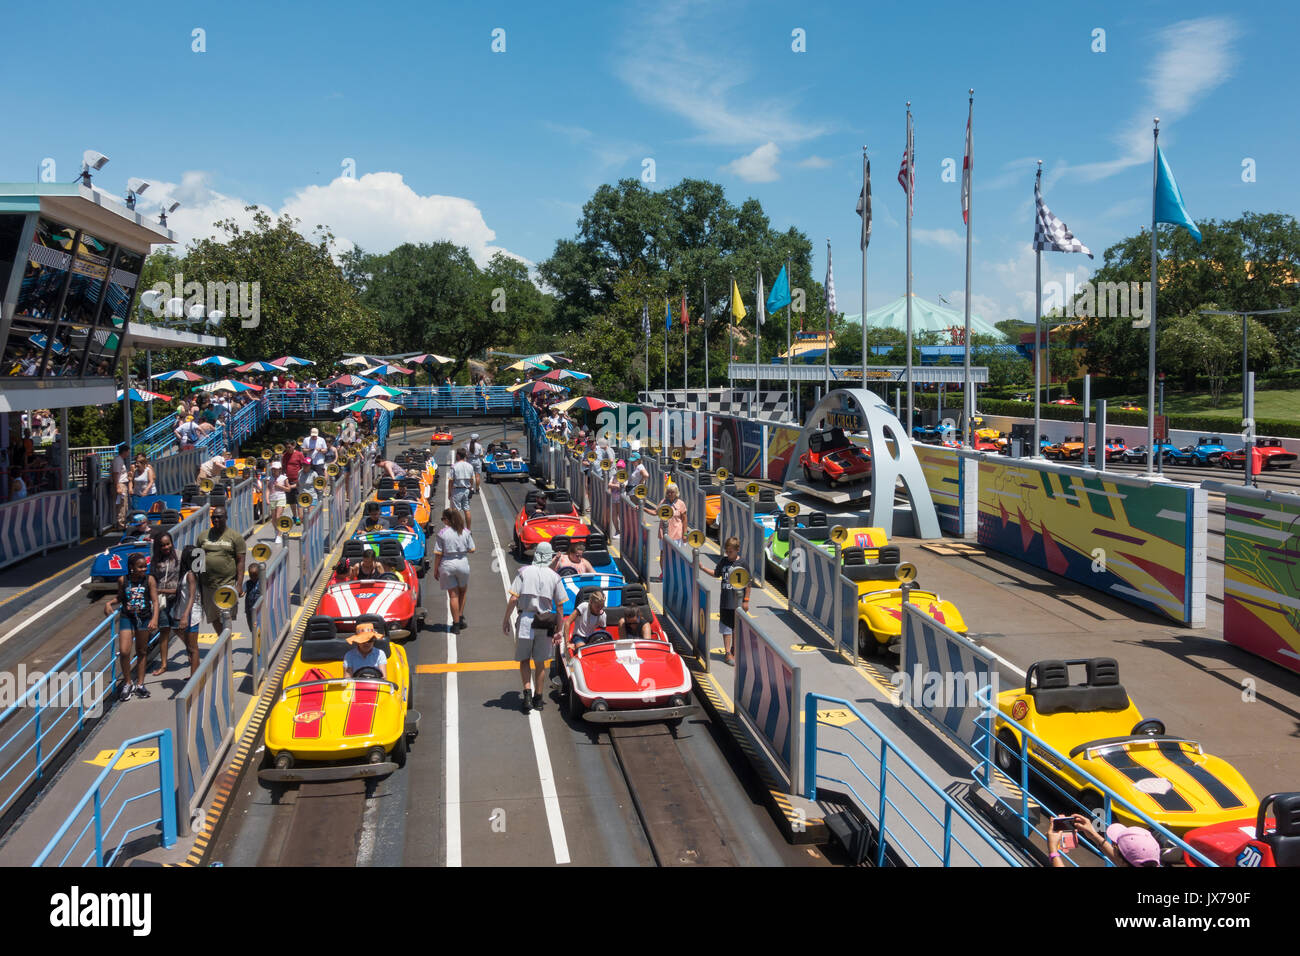 Tomorrowland Speedway in Magic Kingdom Theme Park, Walt Disney World, Orlando, Florida. - Stock Image